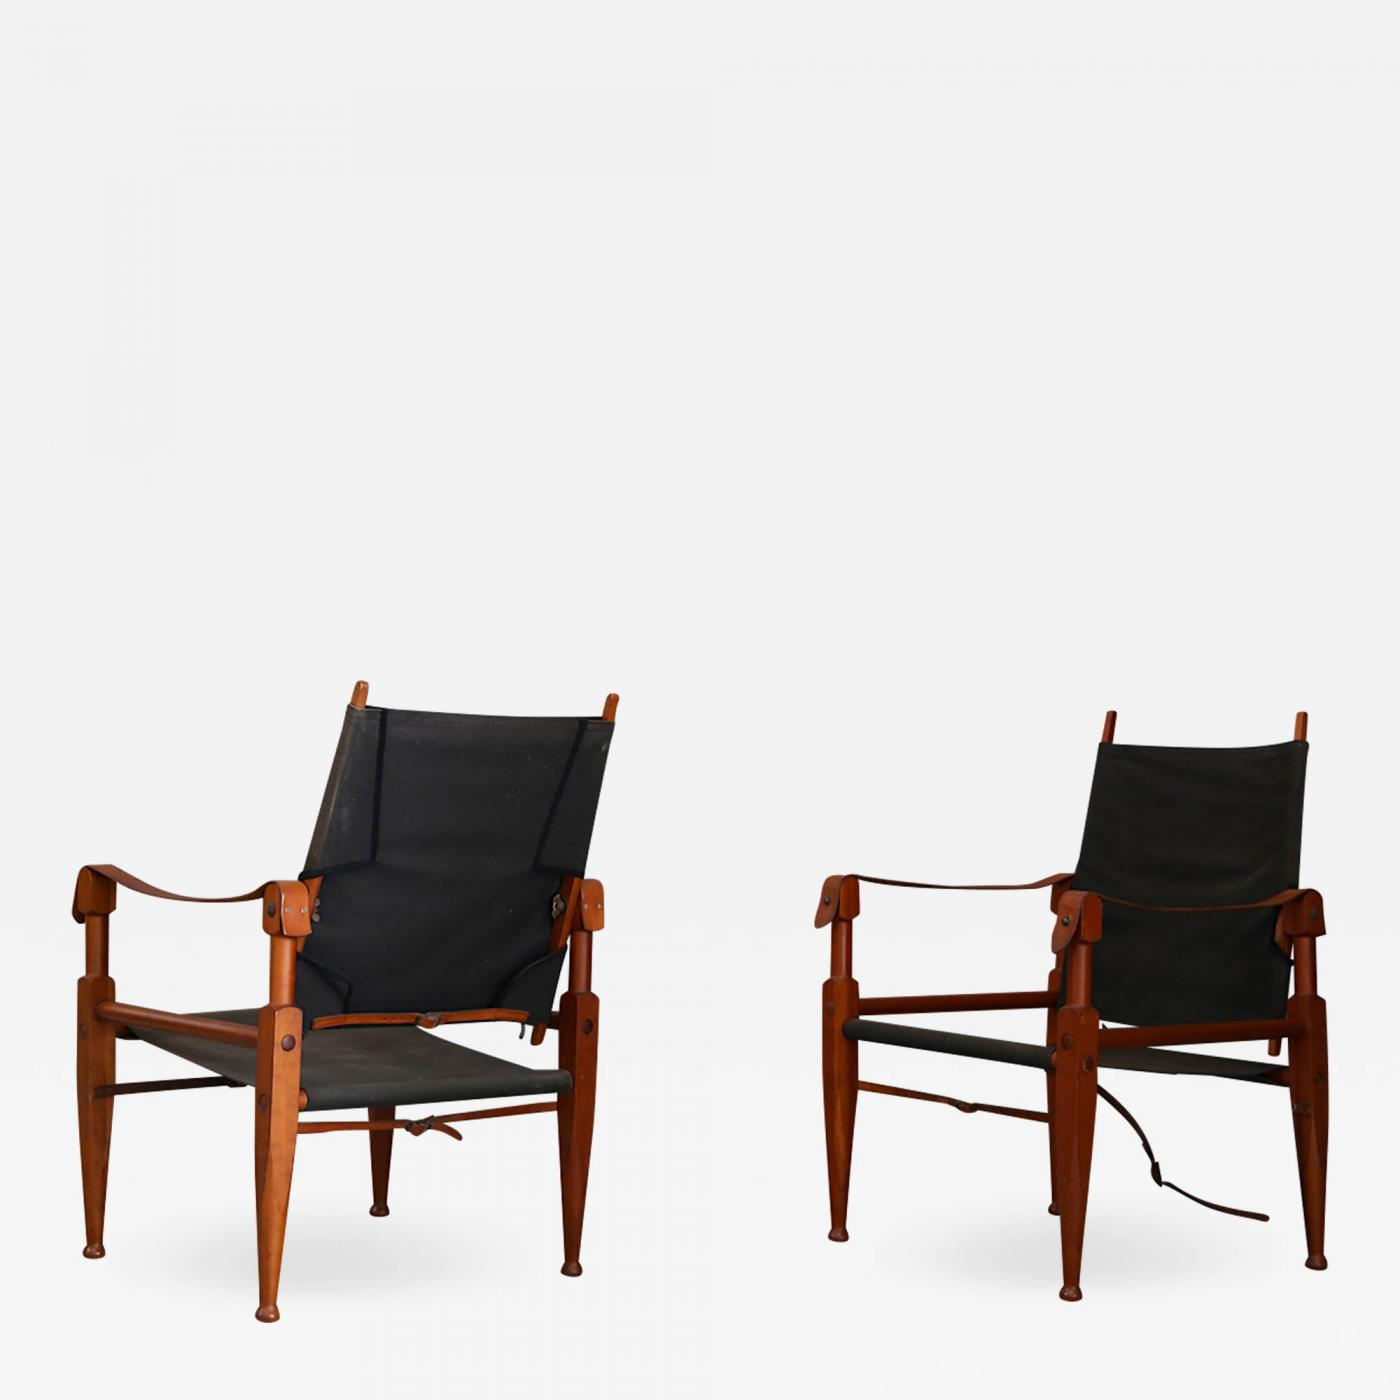 Safari Chairs Kaare Klint Pair Of Vintage Safari Chairs By Kaare Klint For Rud Rasmussen